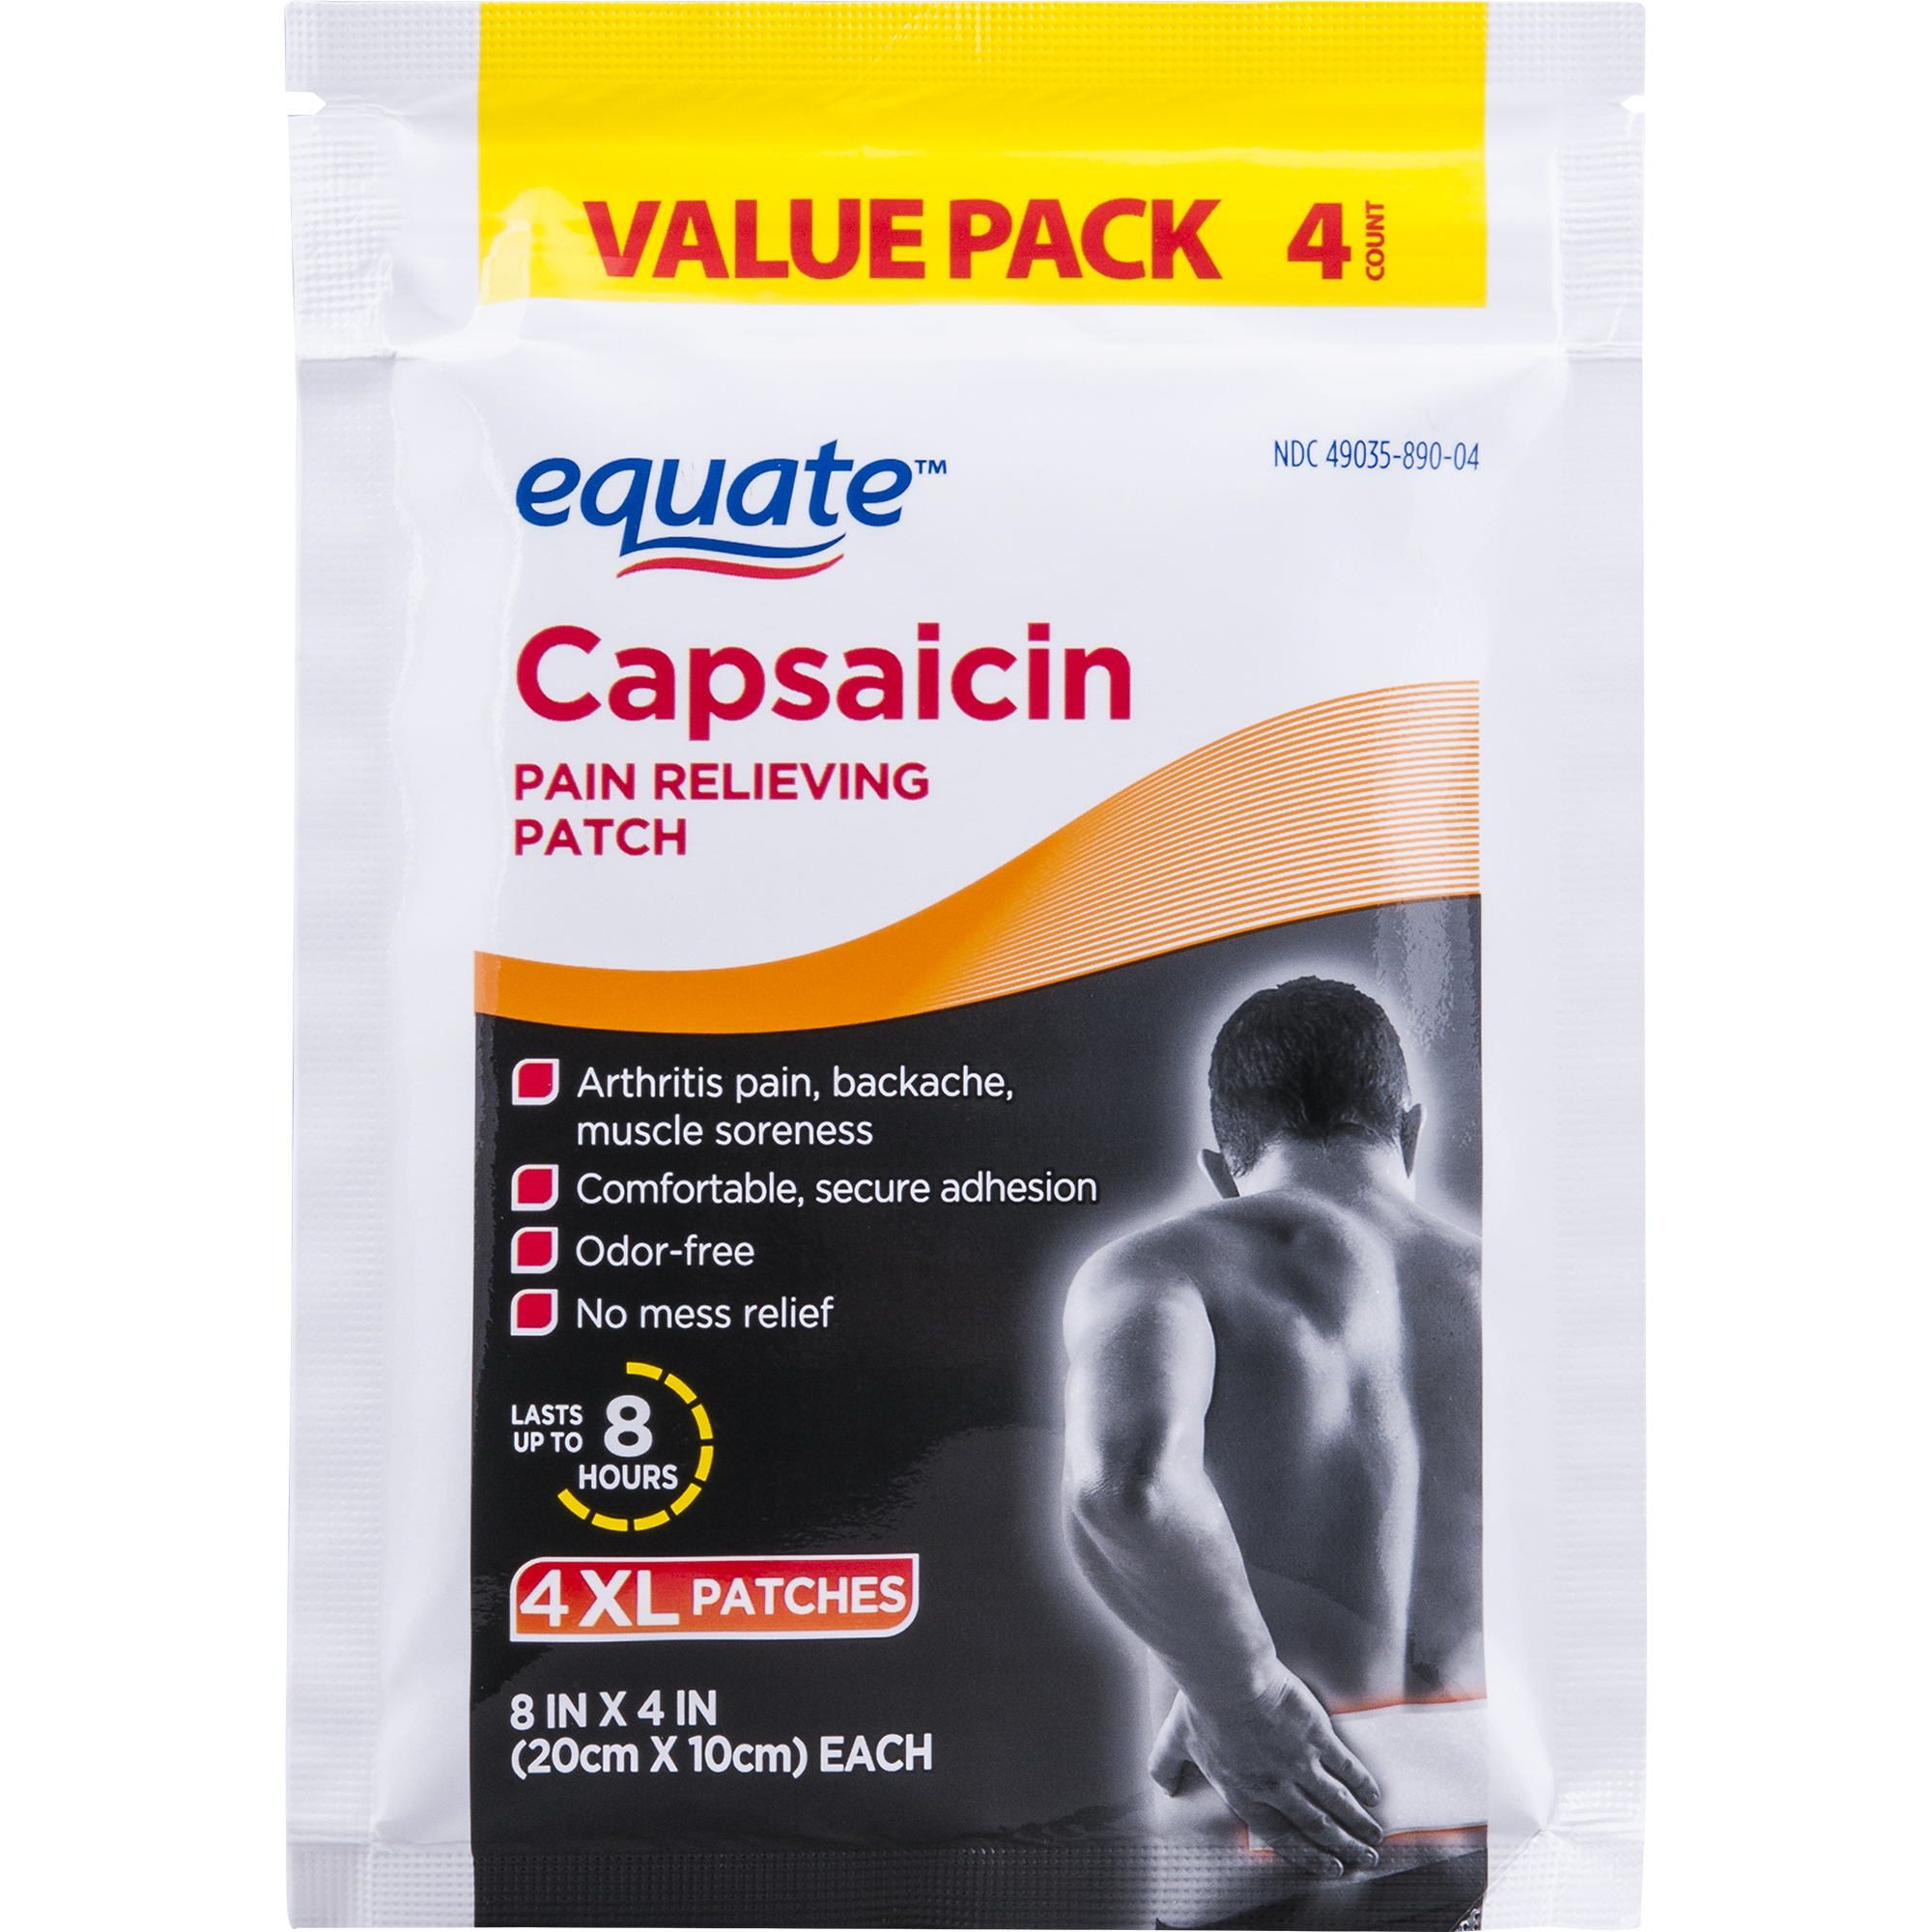 Equate Capsaicin Pain Relieving Patch, XL, Value Pack, 4 Ct